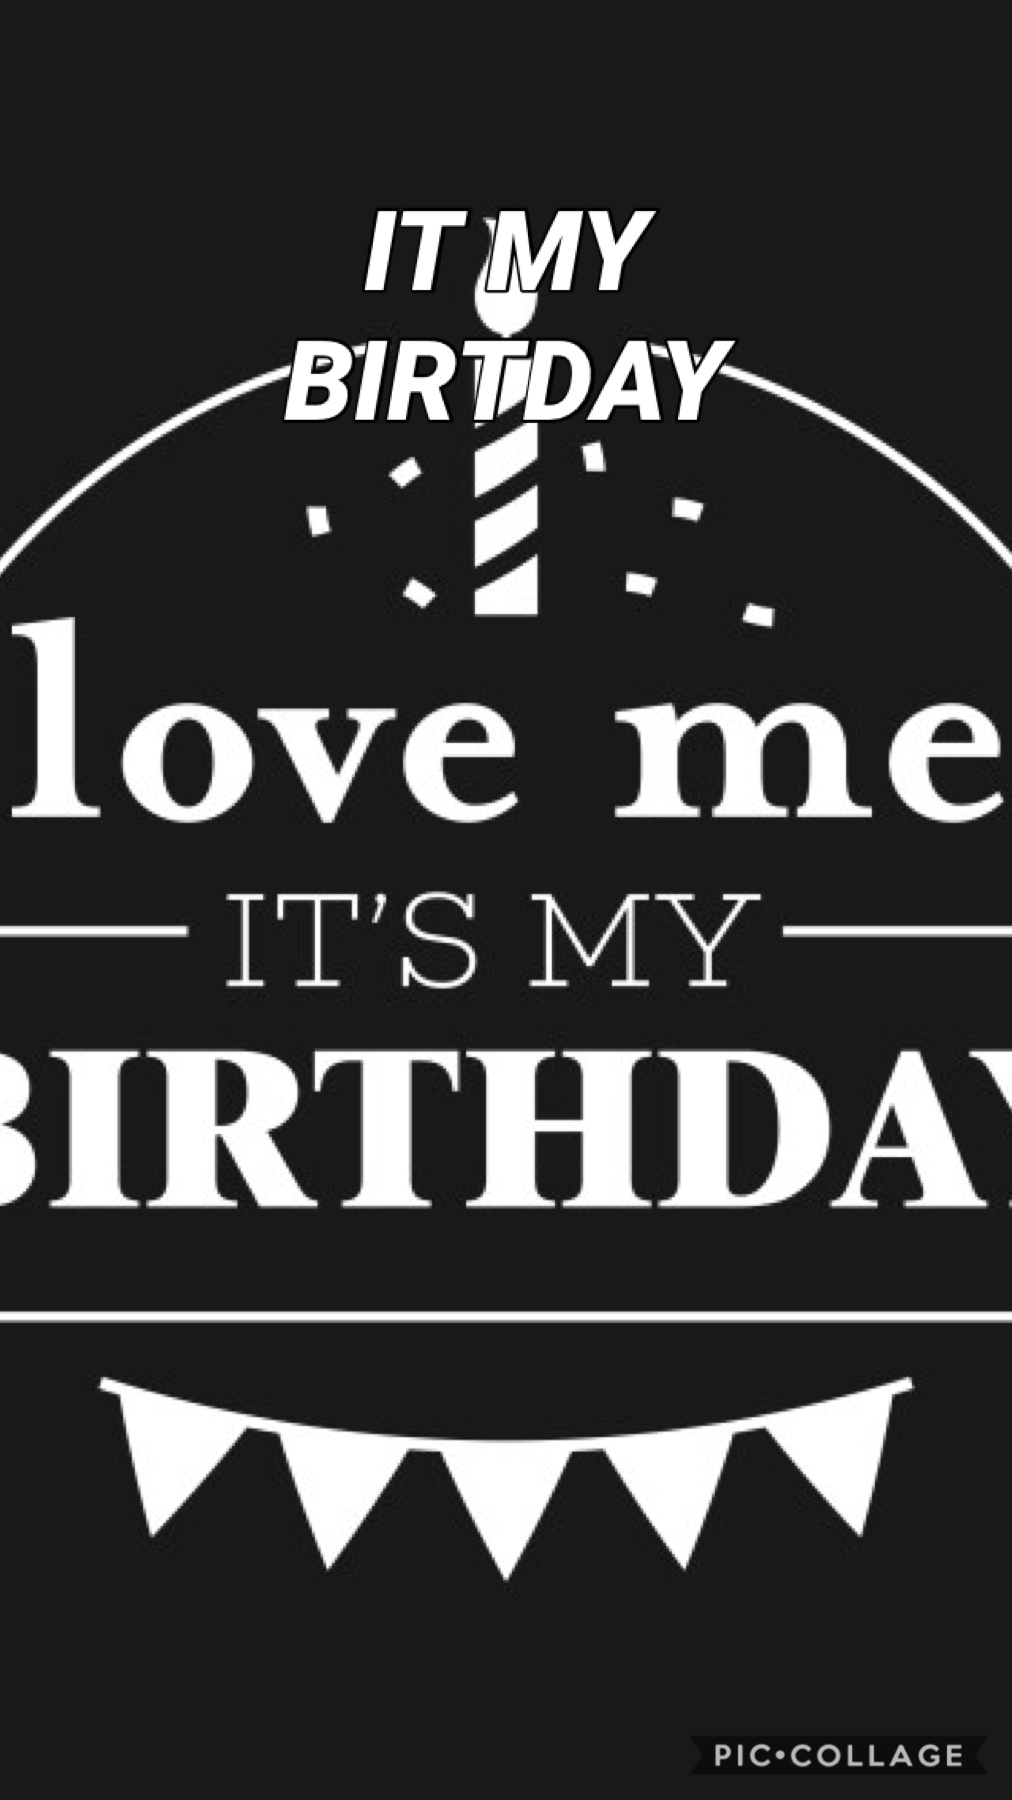 IT MY BIRTDAY